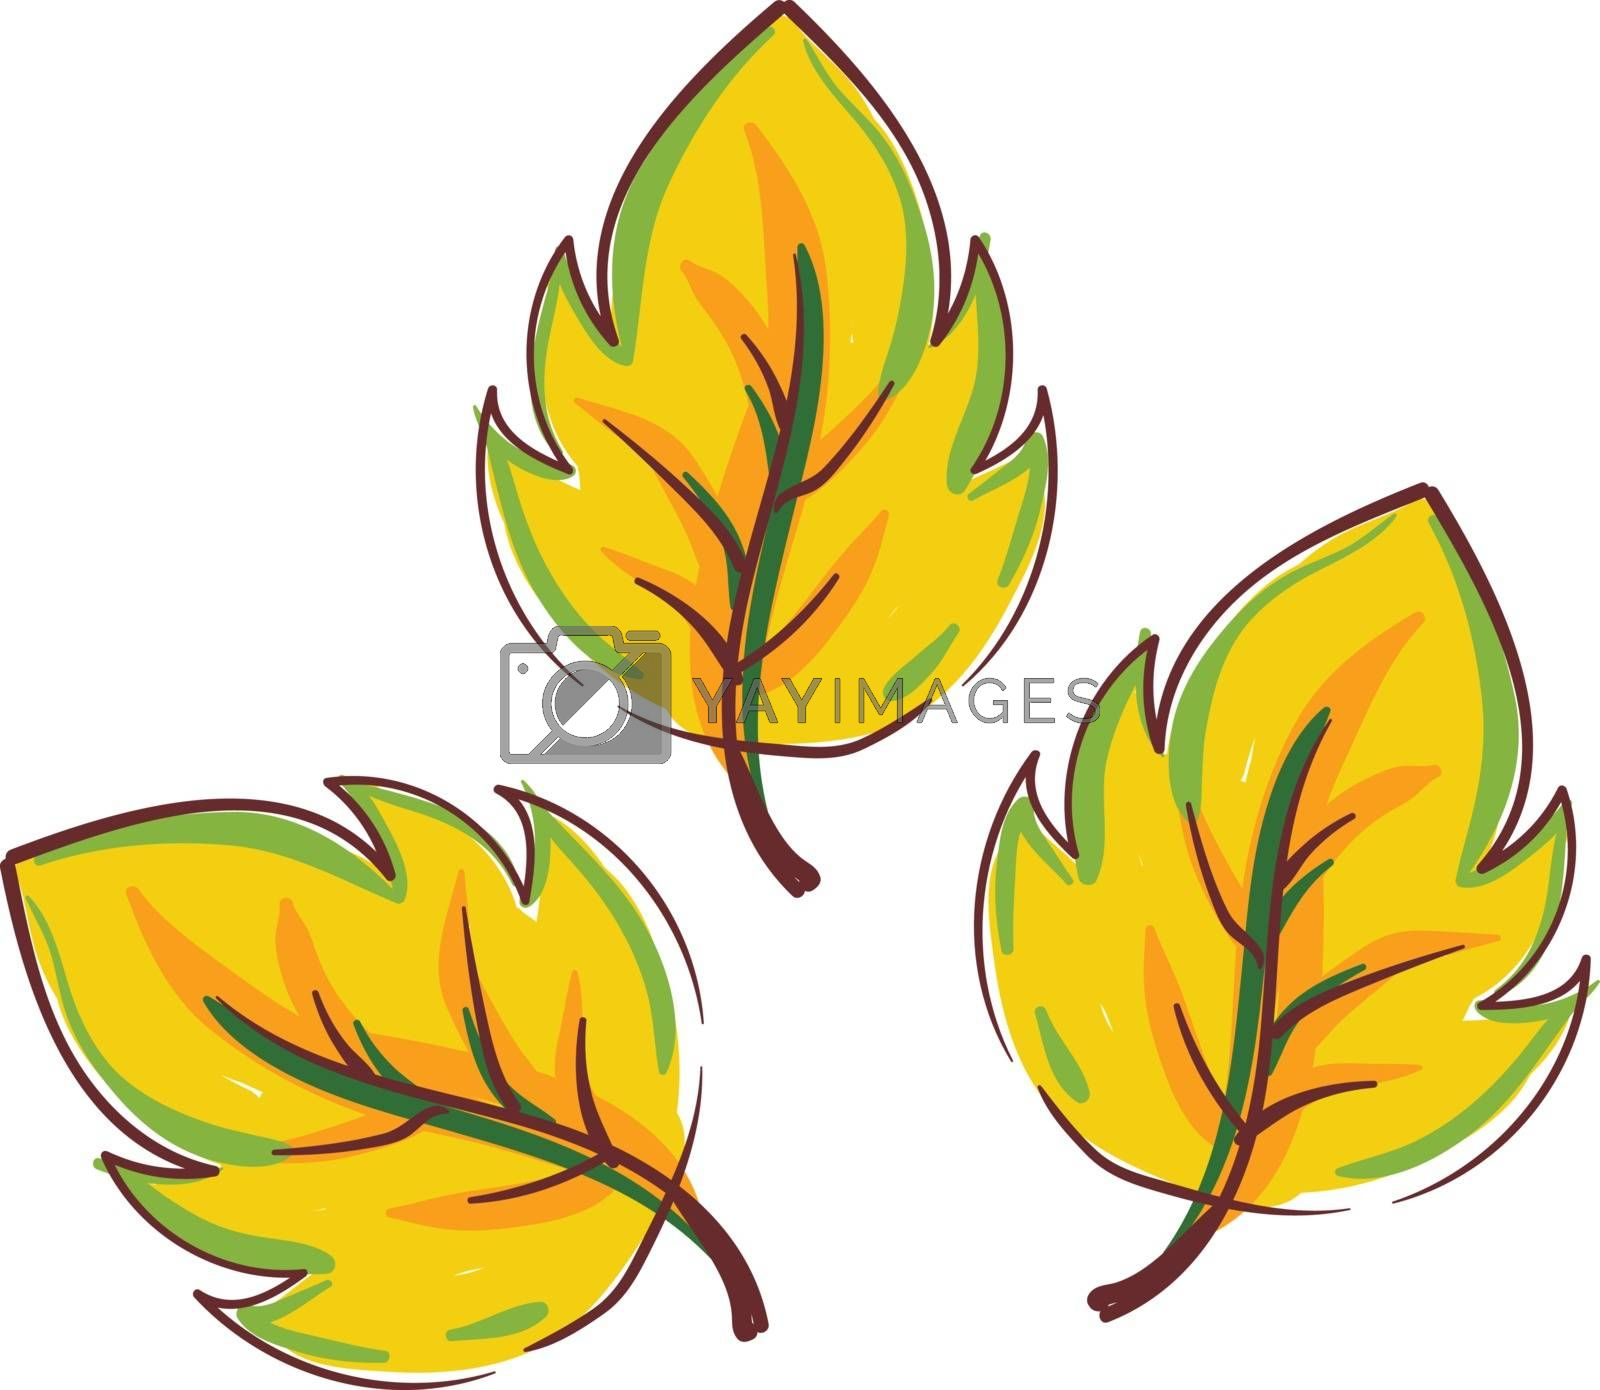 Royalty free image of Clipart of yellow autumn leaves vector or color illustration by Morphart